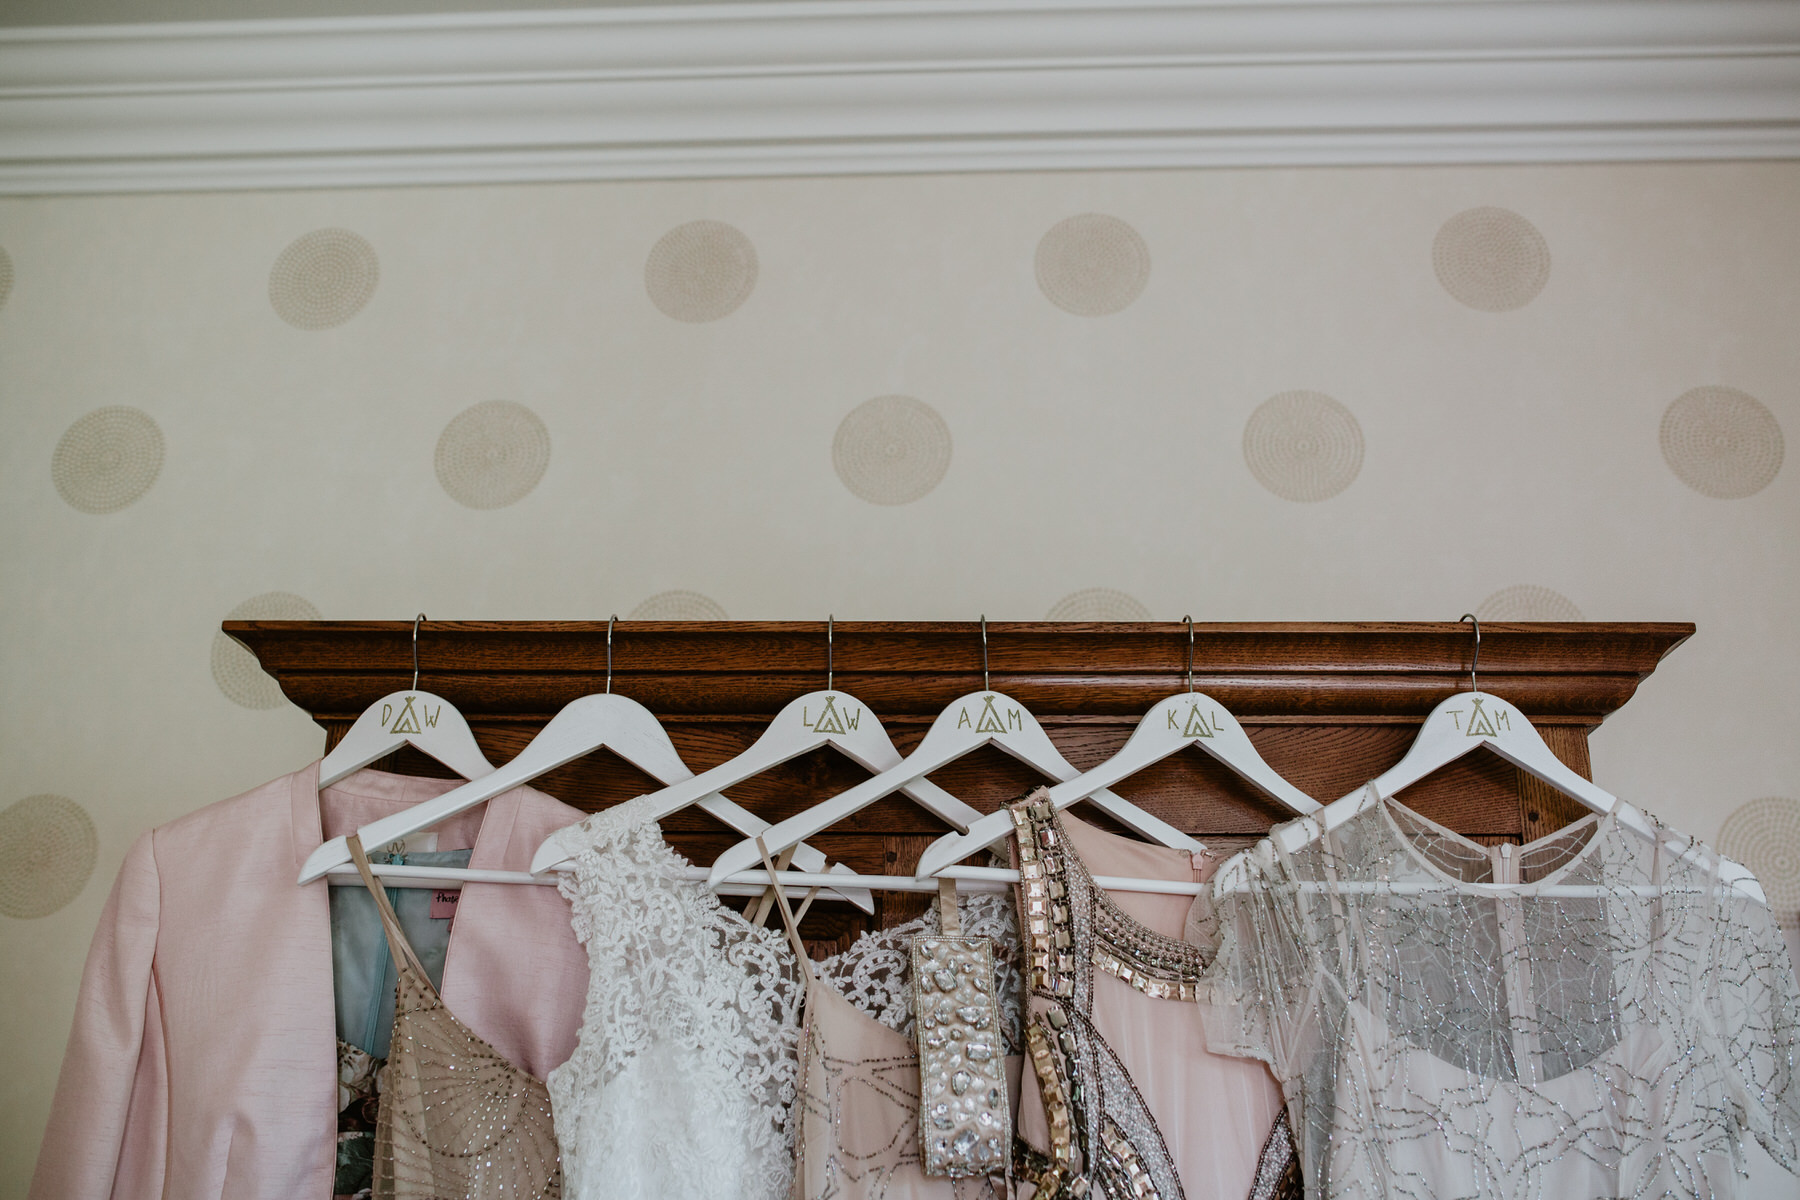 20 bridesmaids initials on hanger details Yolande De Vries Photography.jpg